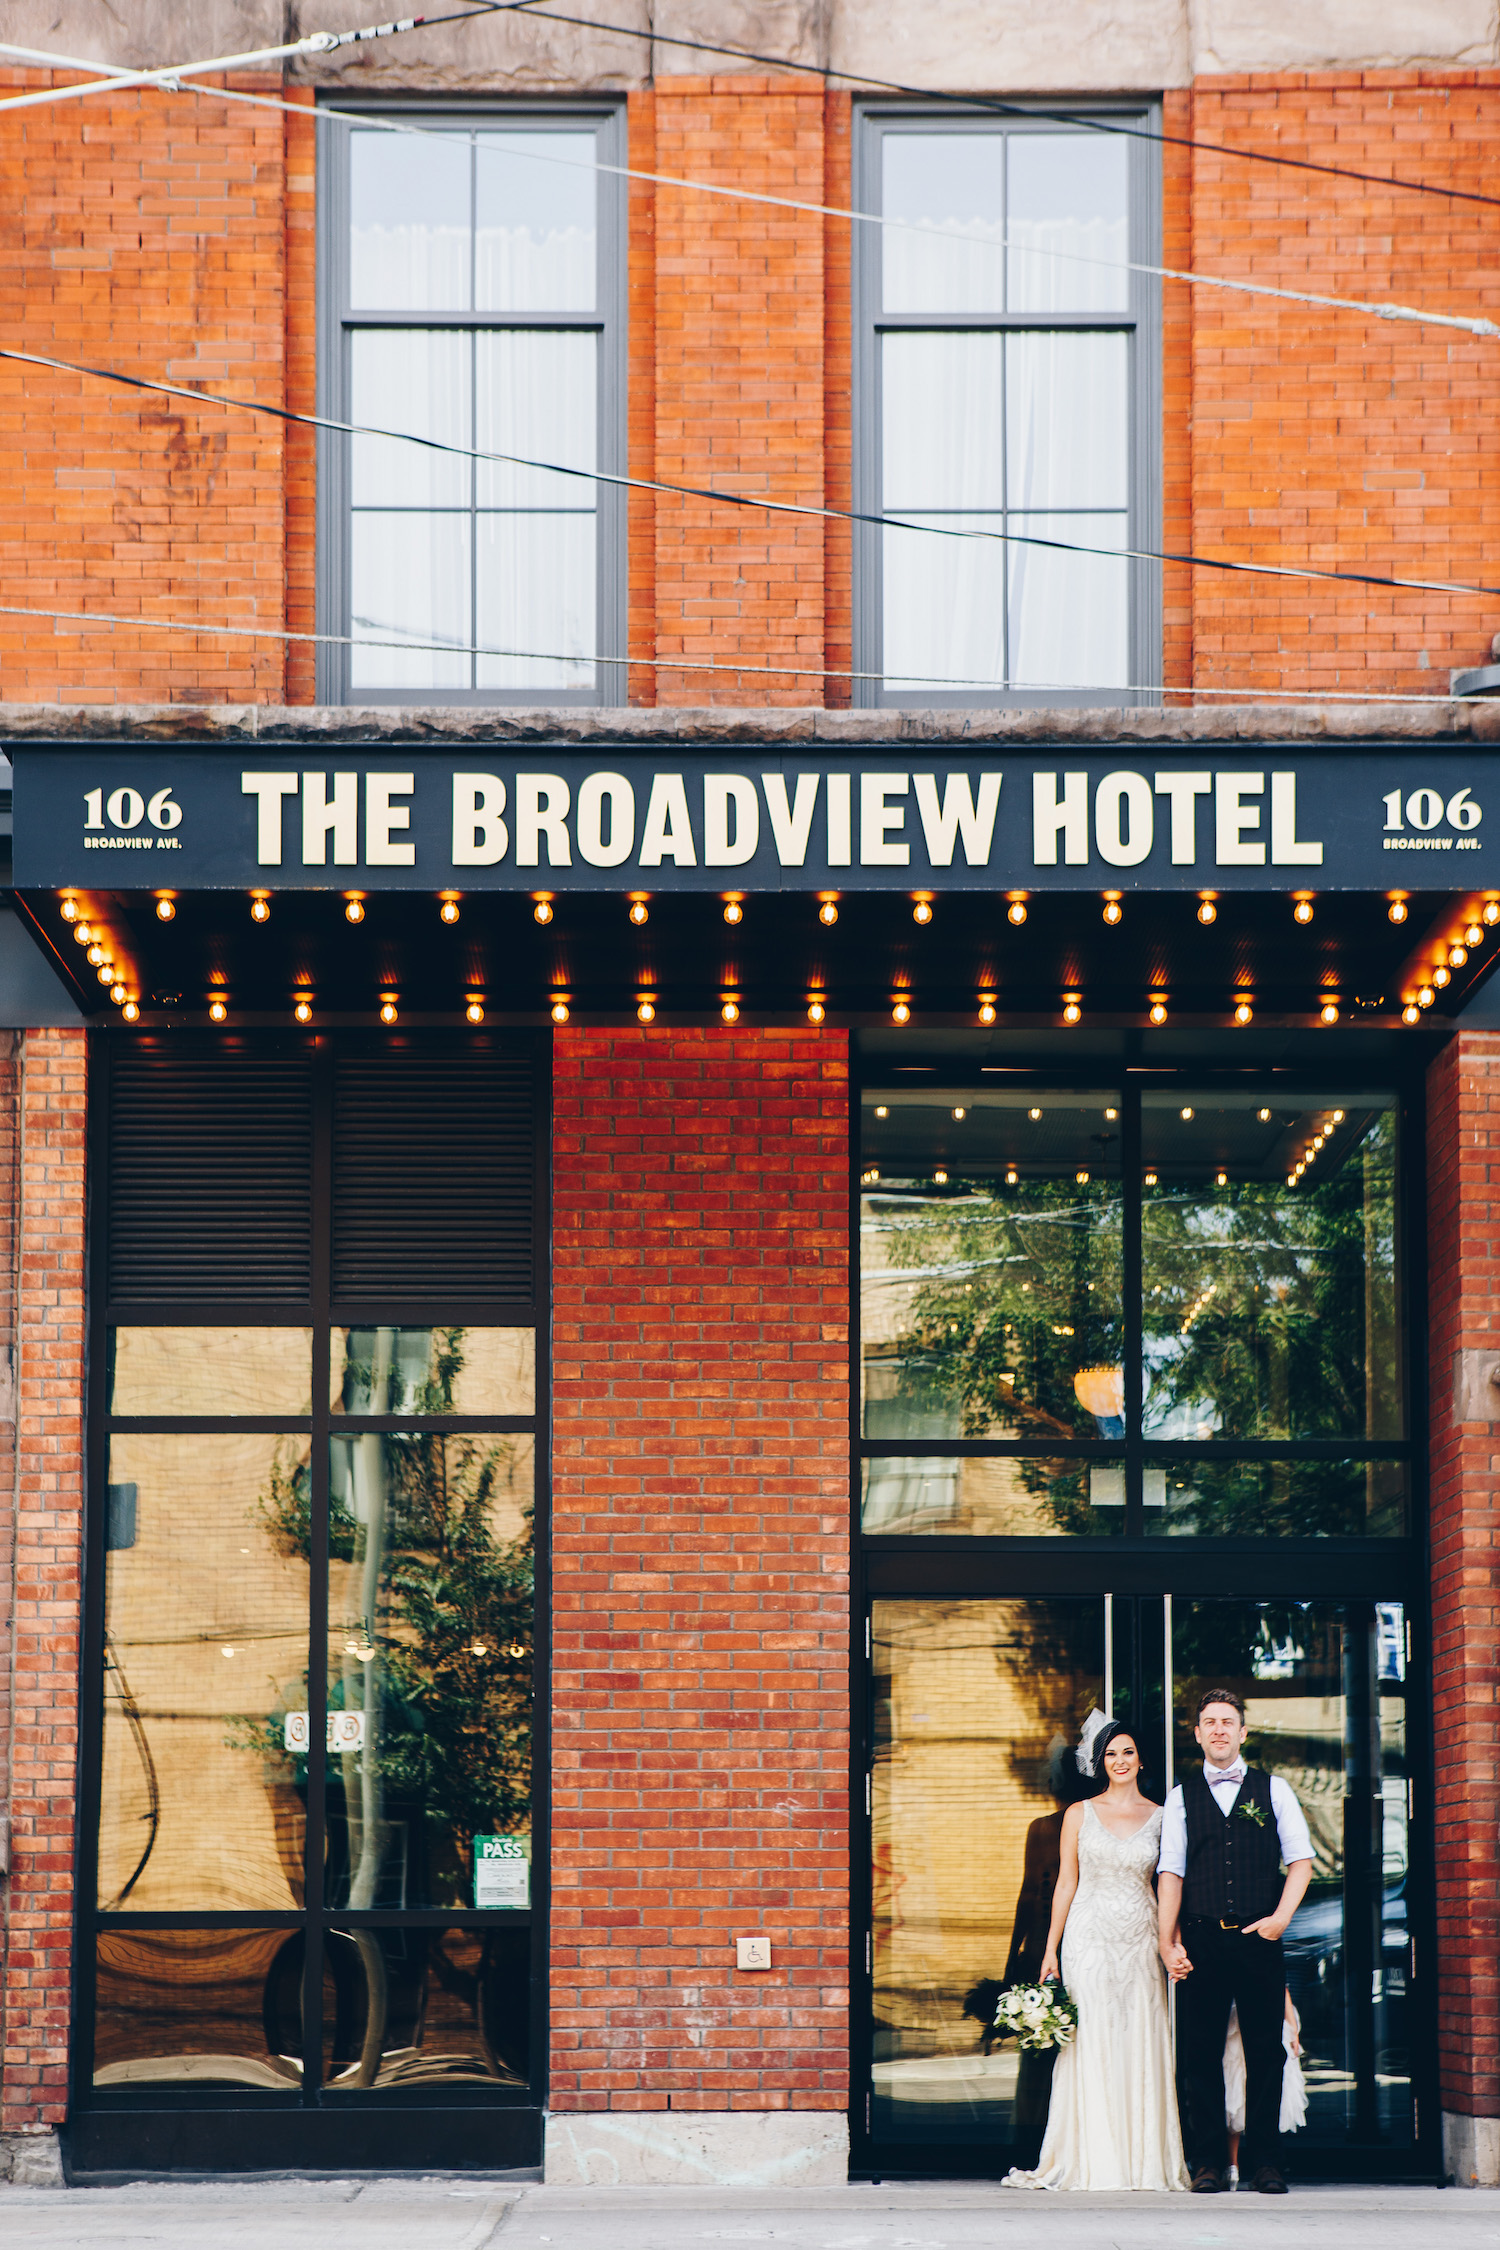 The Broadview Hotel - The Broadview Hotel is a 128 year-old, east end landmark offering an outstanding backdrop for celebrations of all kinds.Address: 106 Broadview Avenue, TorontoEmail: SBudhu@thebroadviewhotel.caContact: Sabrina BudhuPhone: (416) 686-9199 x 301Website: www.thebroadviewhotel.cainstagram ~ facebook ~ twitter